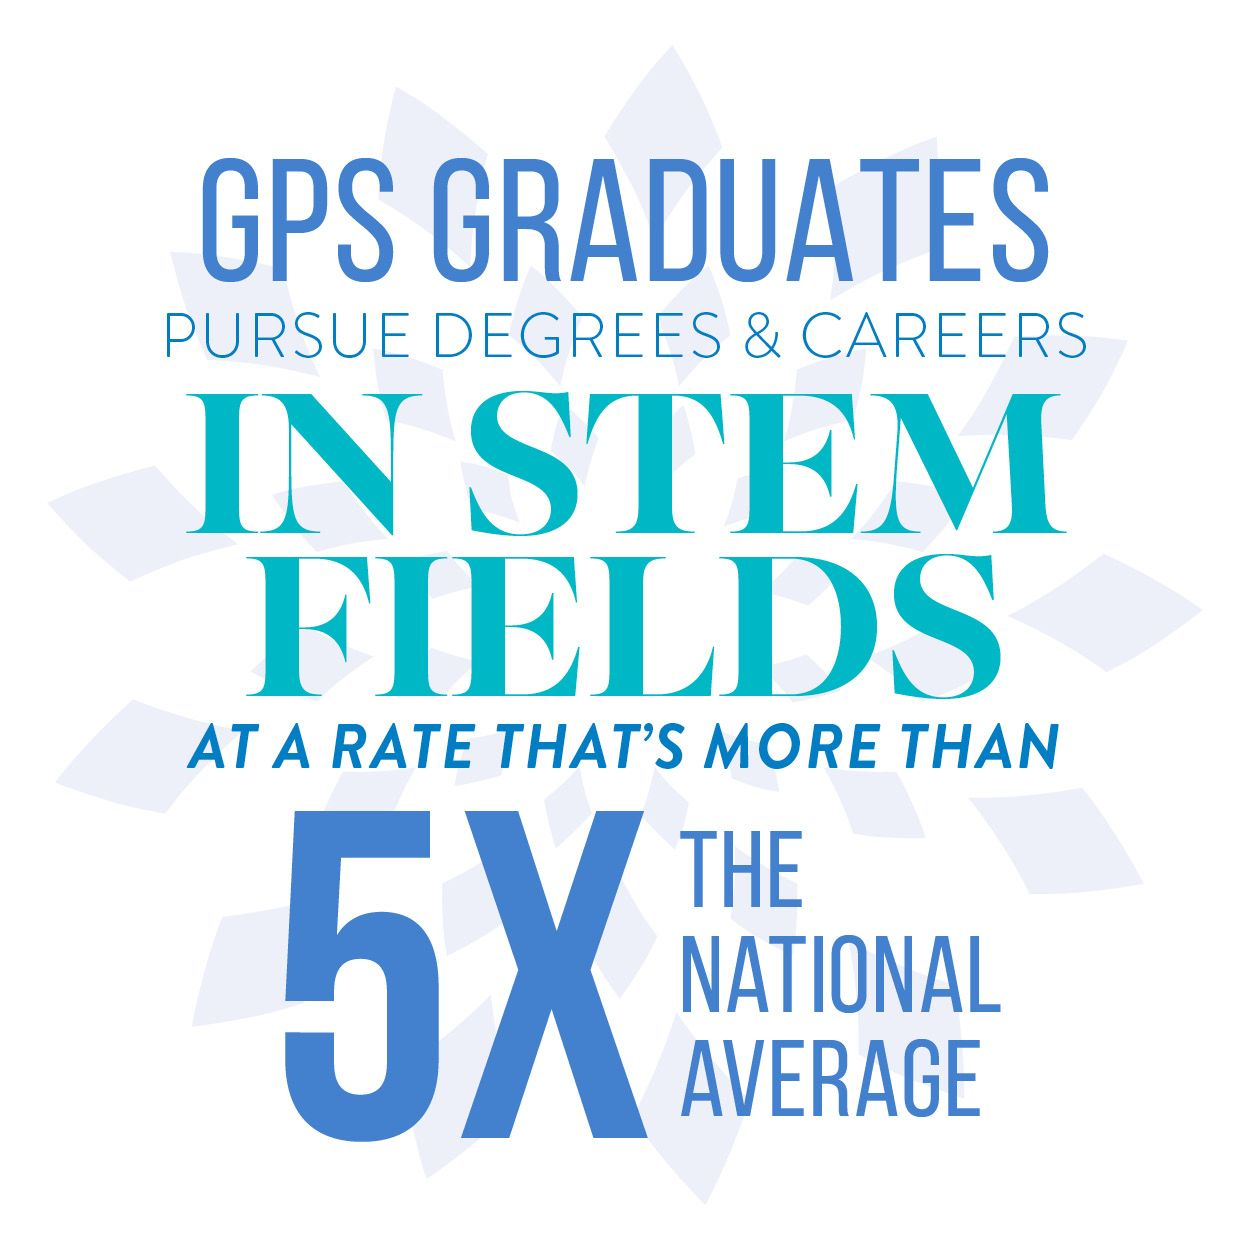 GPS graduates go on to pursue degrees and careers in STEM fields at a rate that's more than five times the national average for women